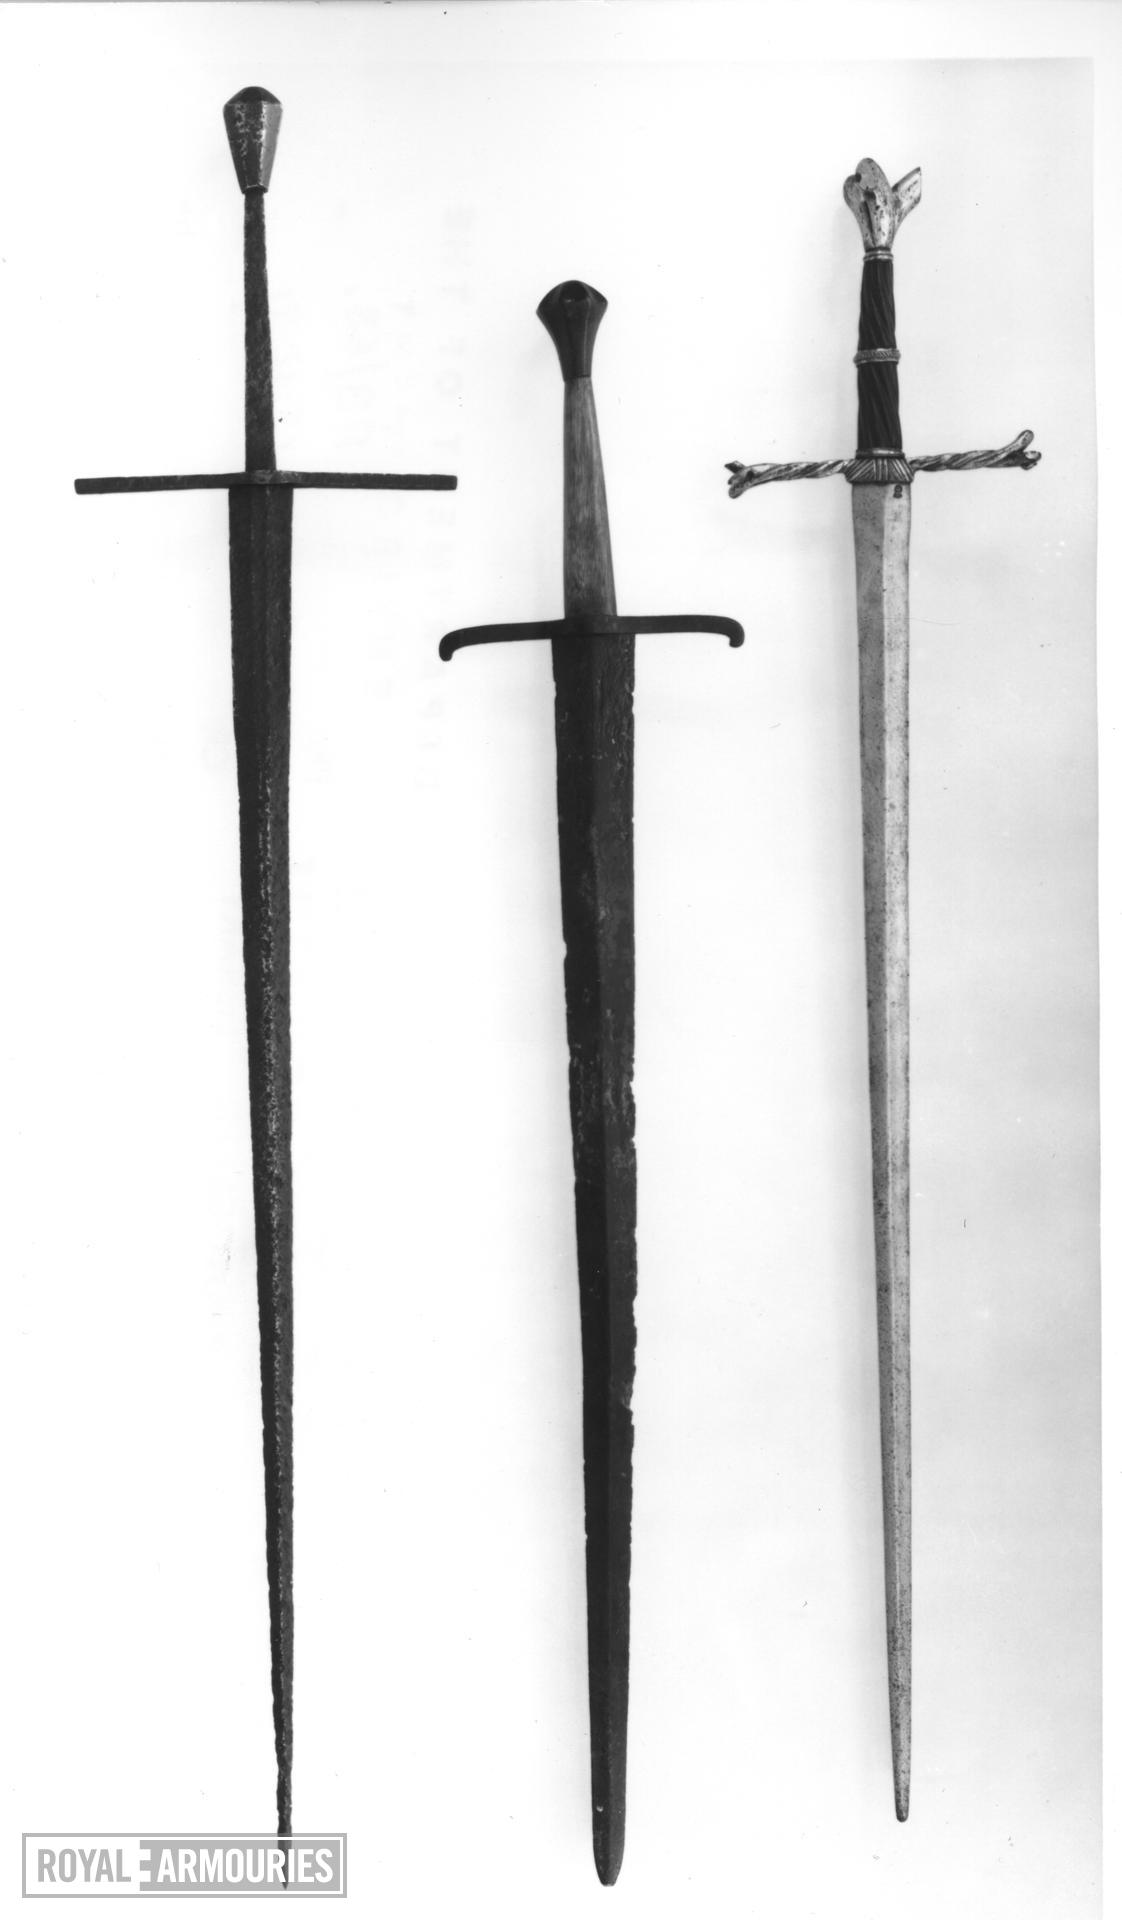 Sword Writhen Hilted Sword 1480 Royal Armouries Collections